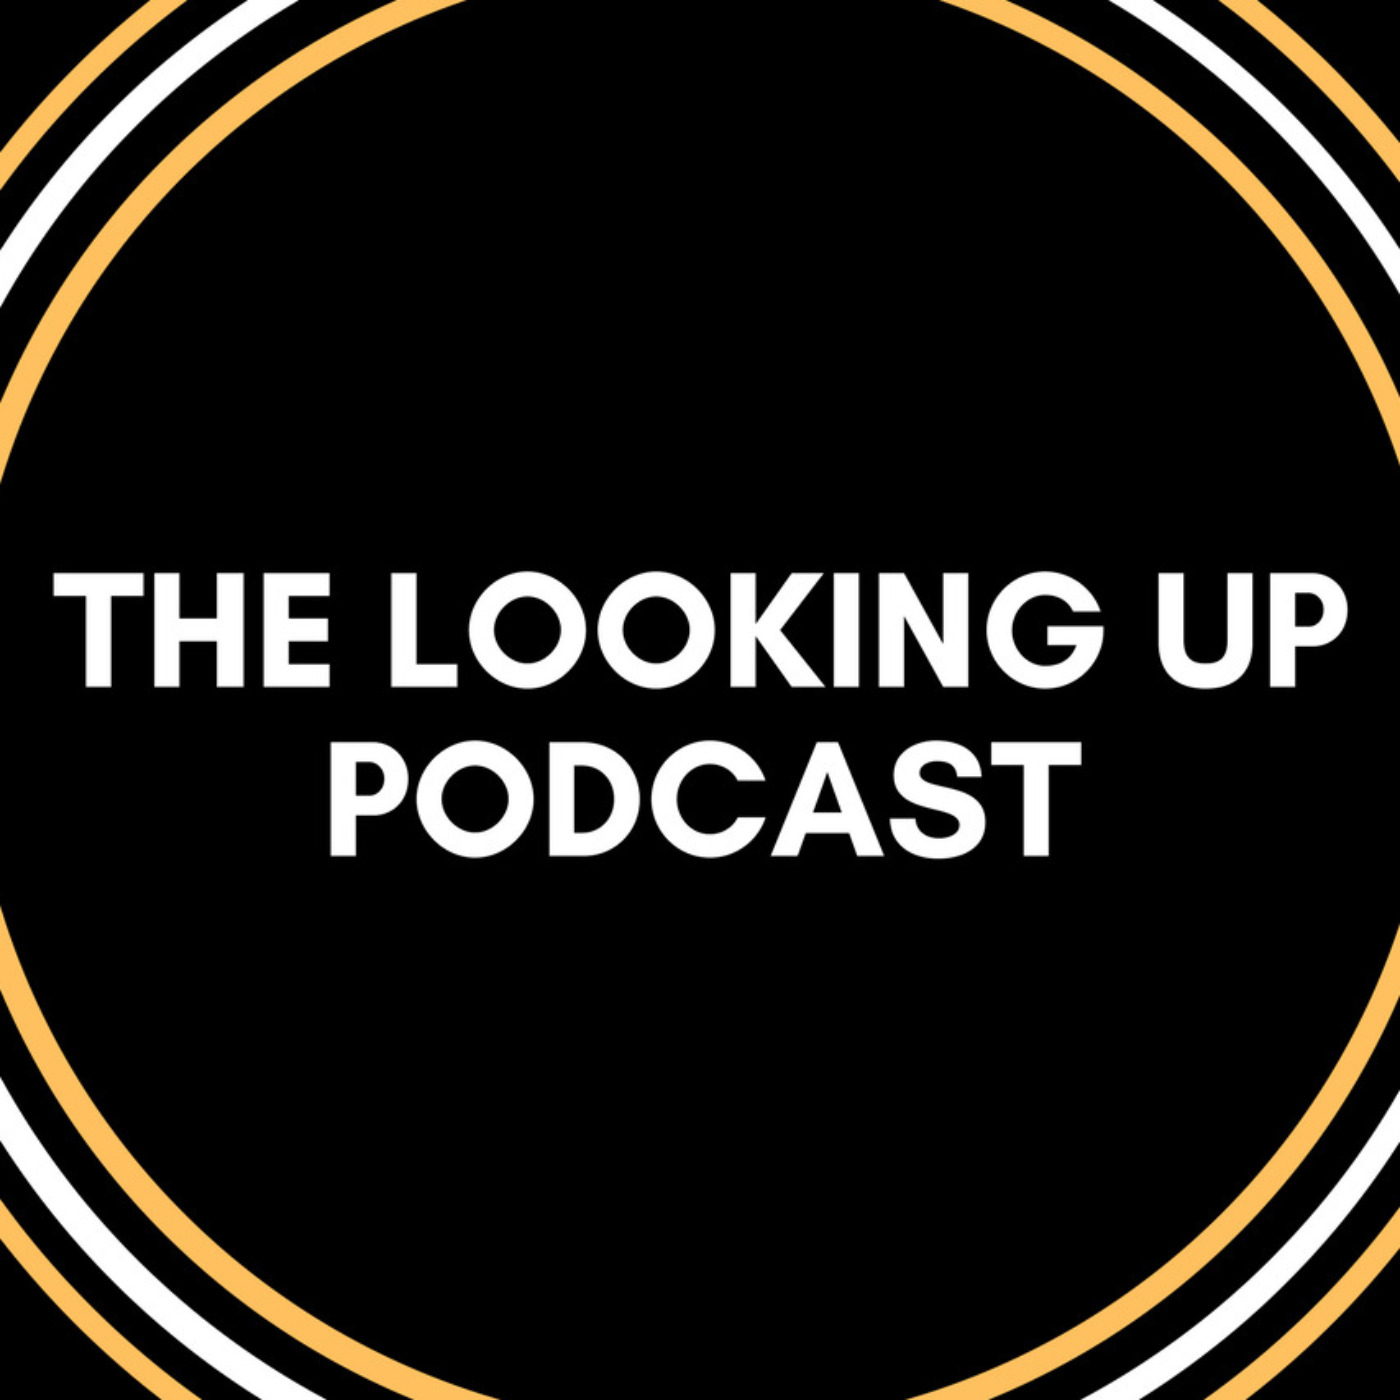 The Looking Up Podcast